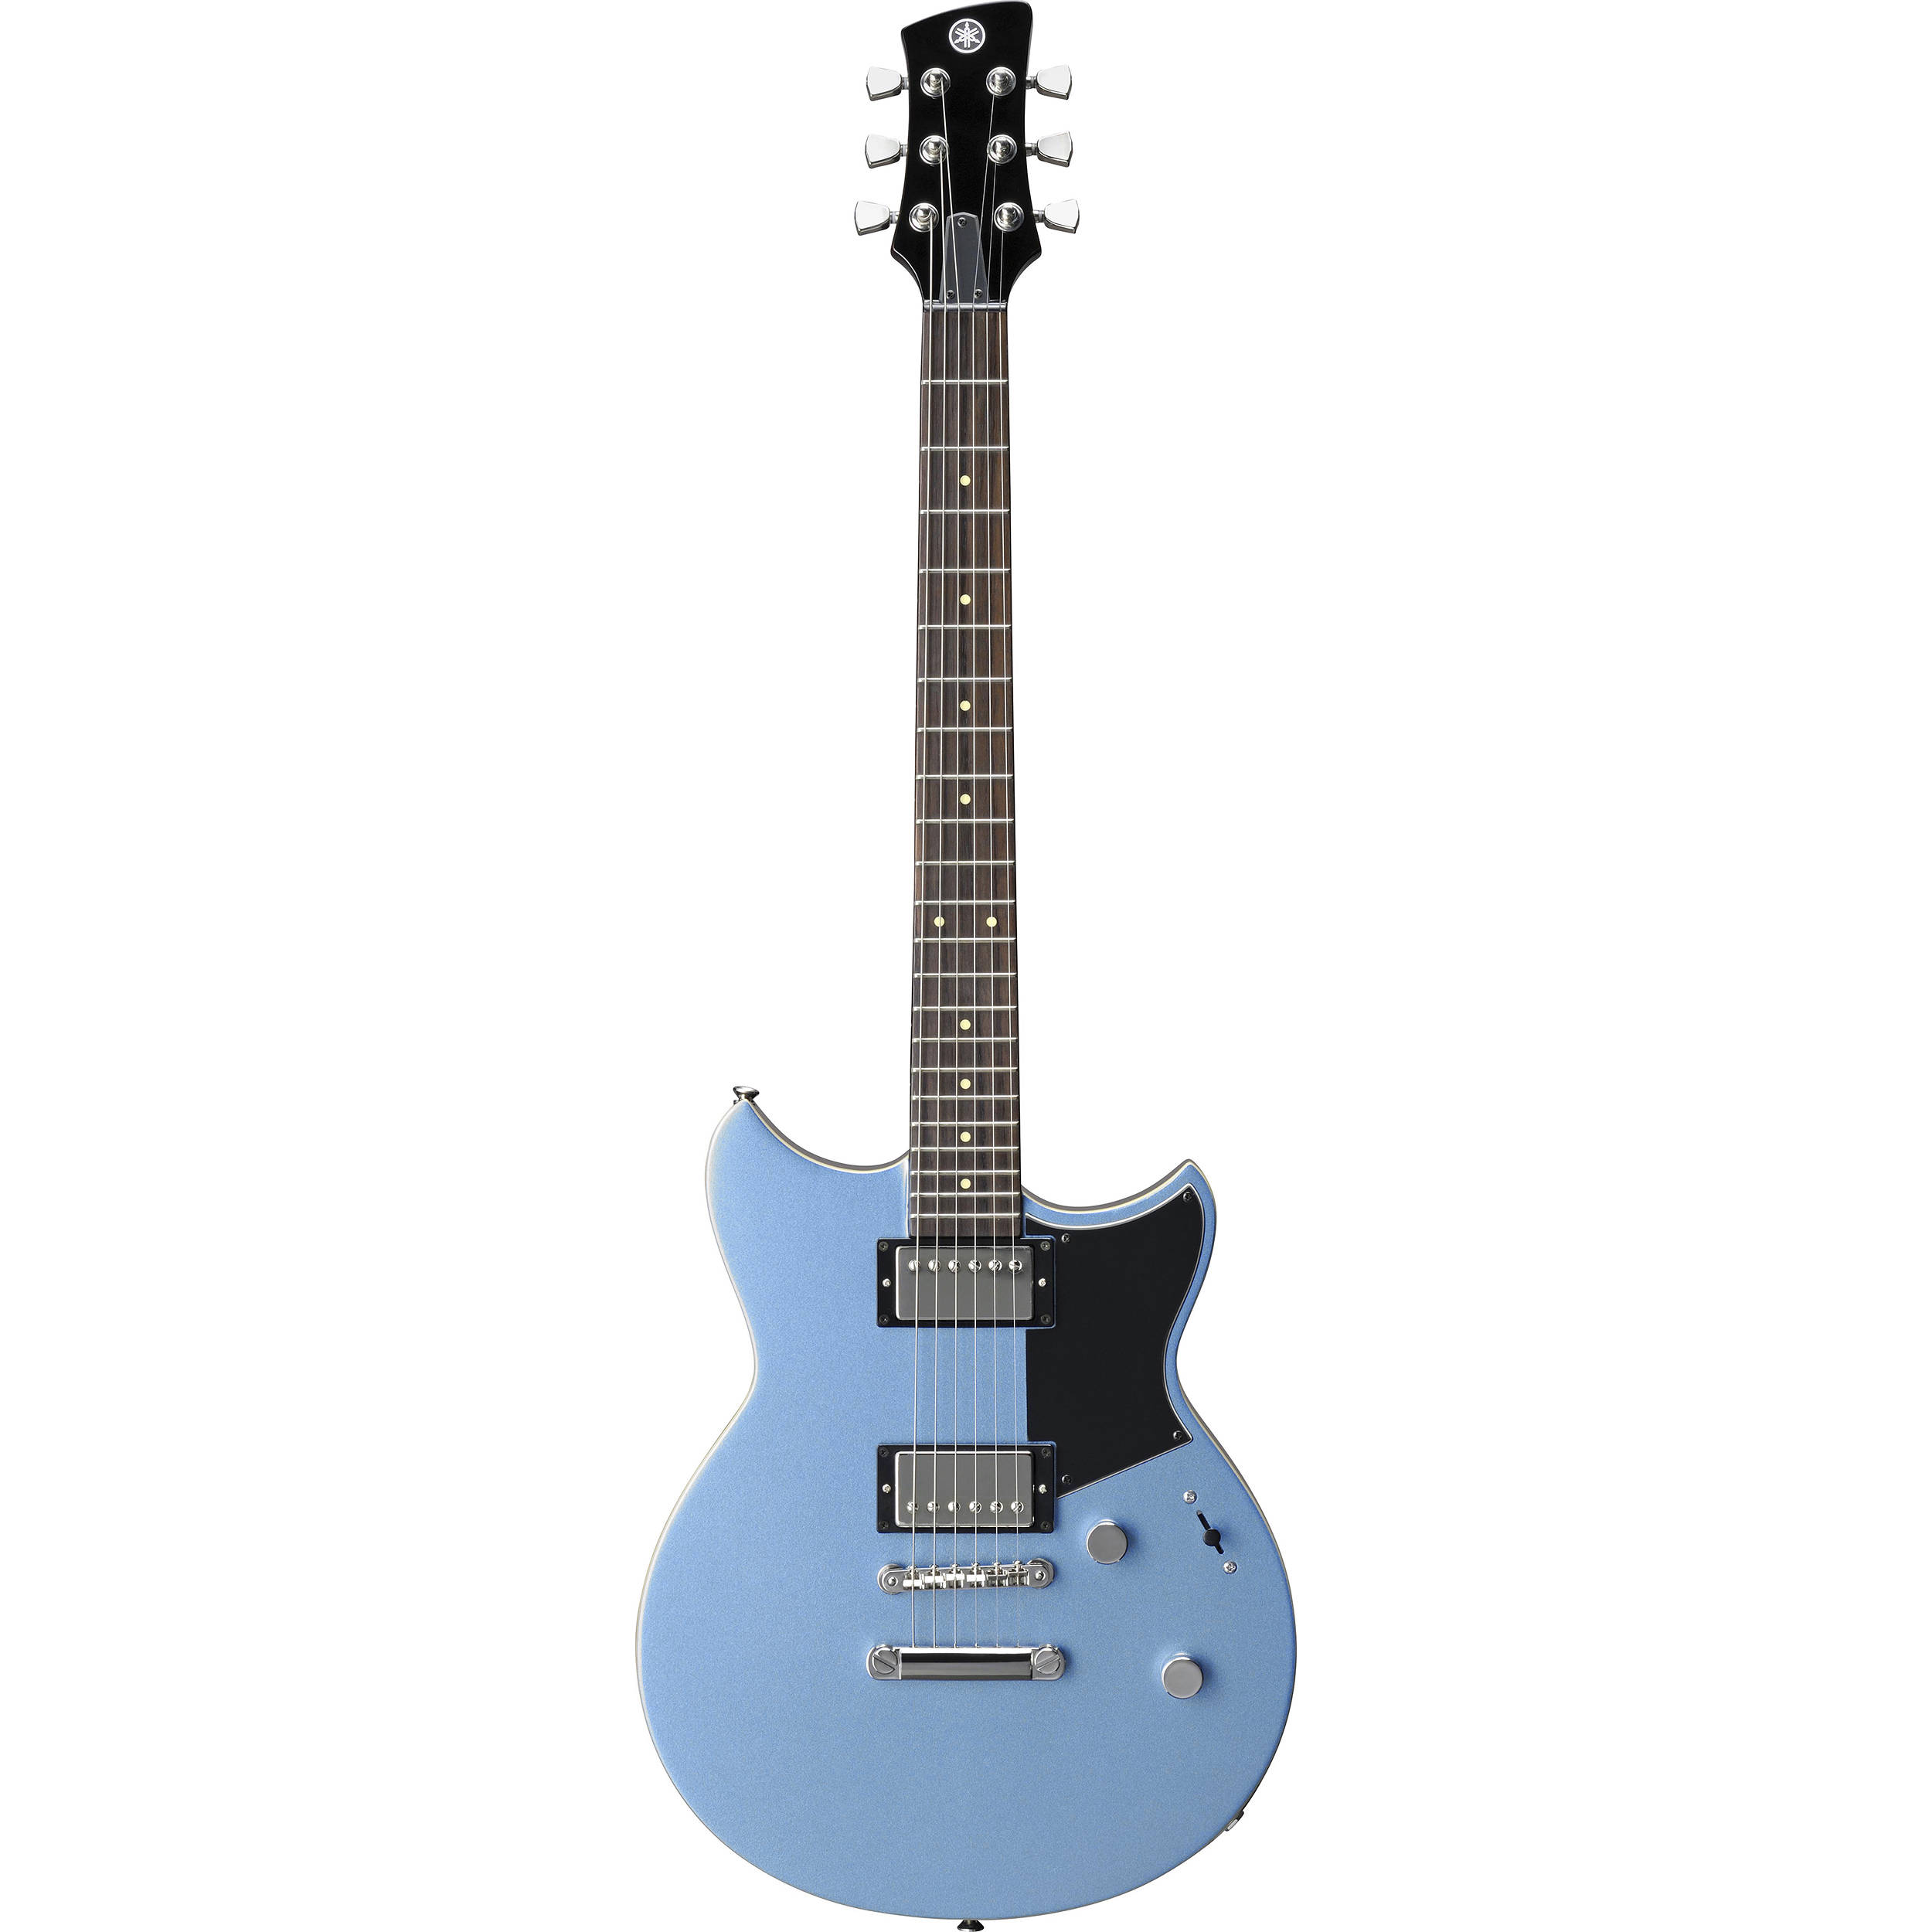 yamaha revstar rs420 electric guitar factory blue rs420 ftb. Black Bedroom Furniture Sets. Home Design Ideas